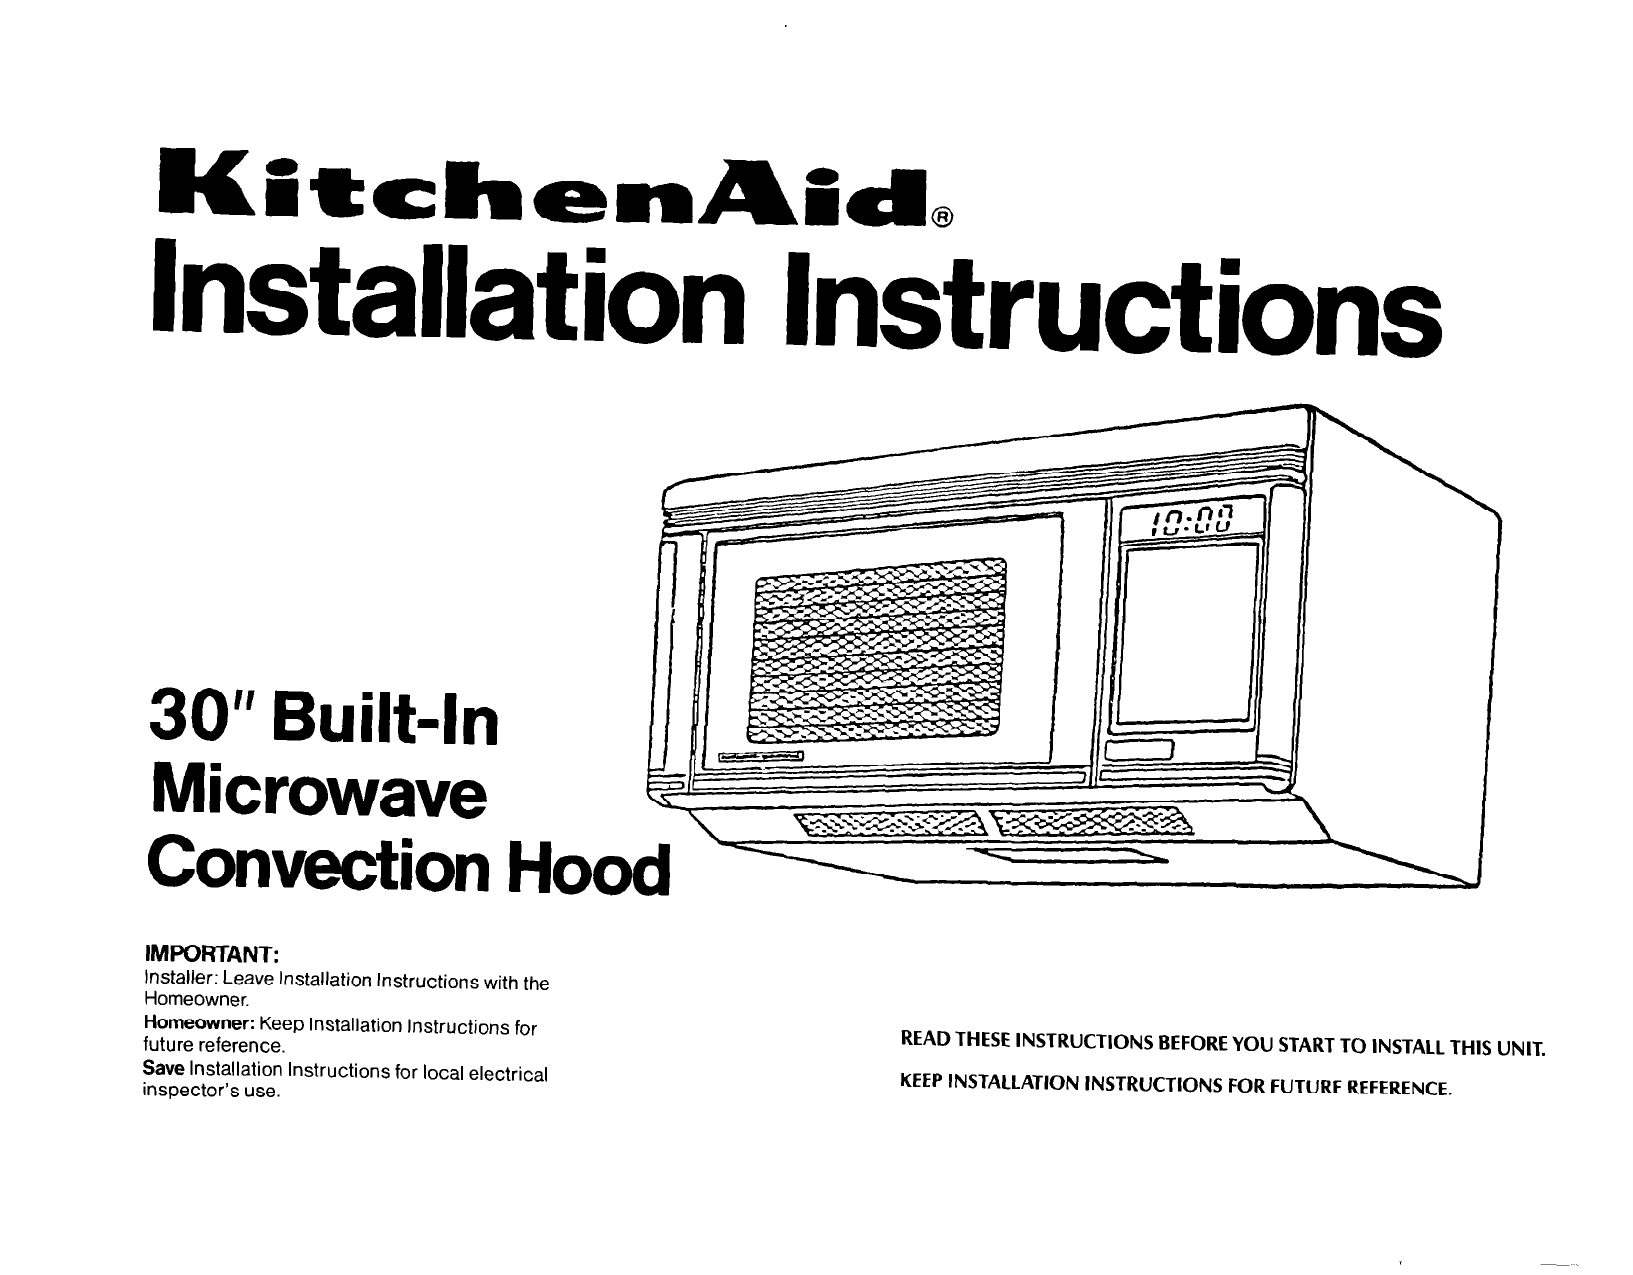 Kitchenaid Microwave Oven User Guide